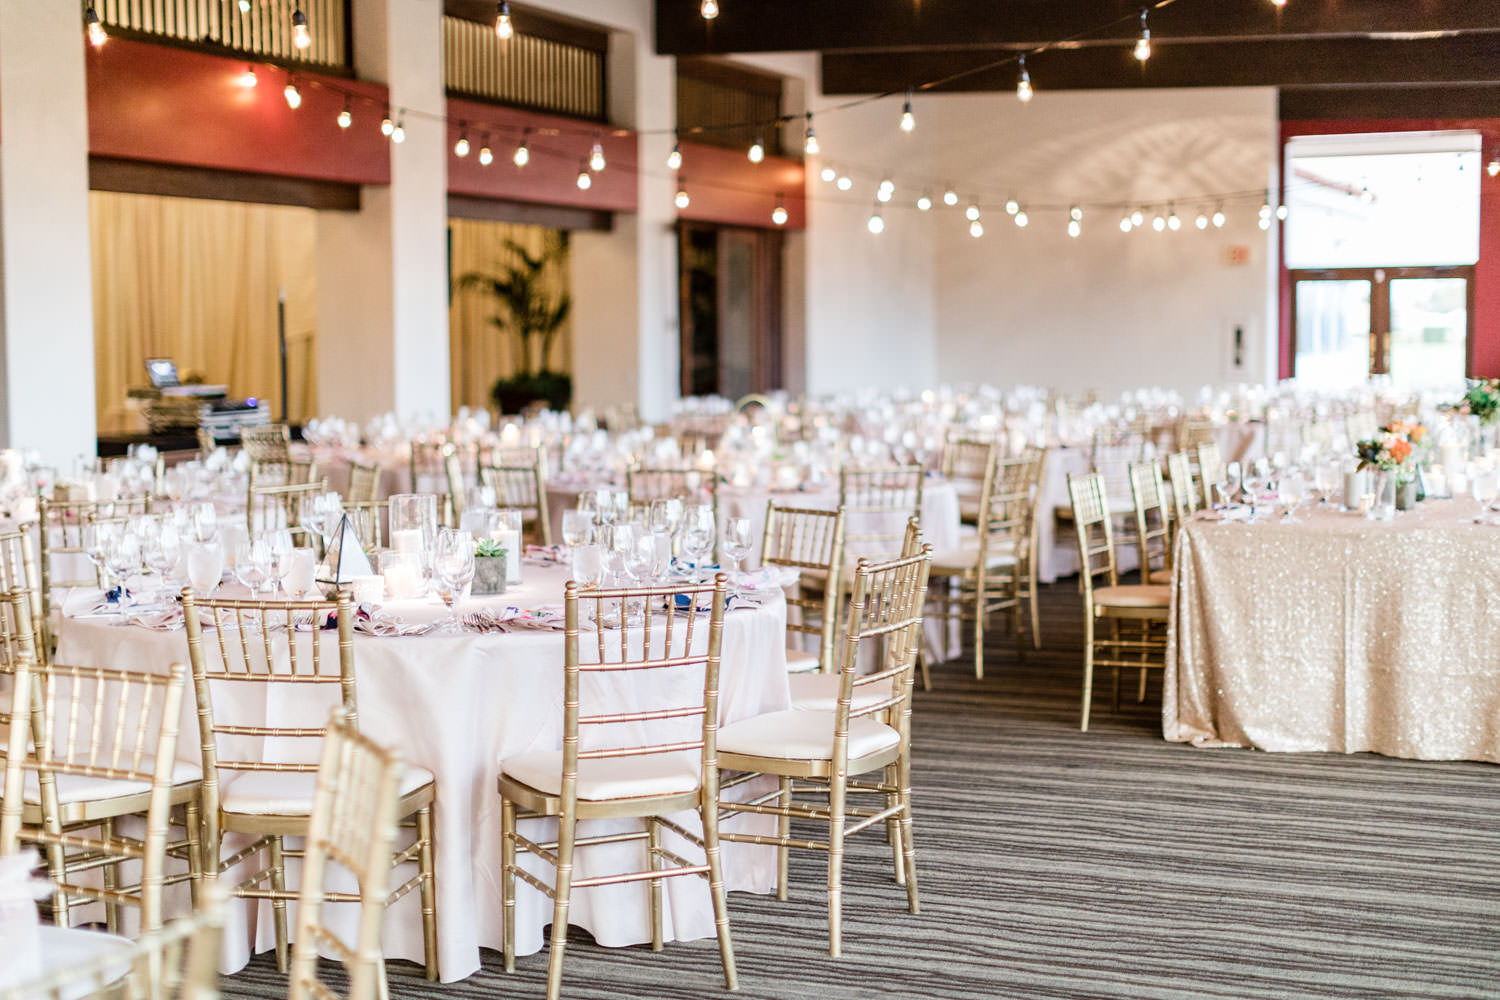 Reception with blush linens and market lights indoors, La Quinta Resort wedding, Cavin Elizabeth Photography